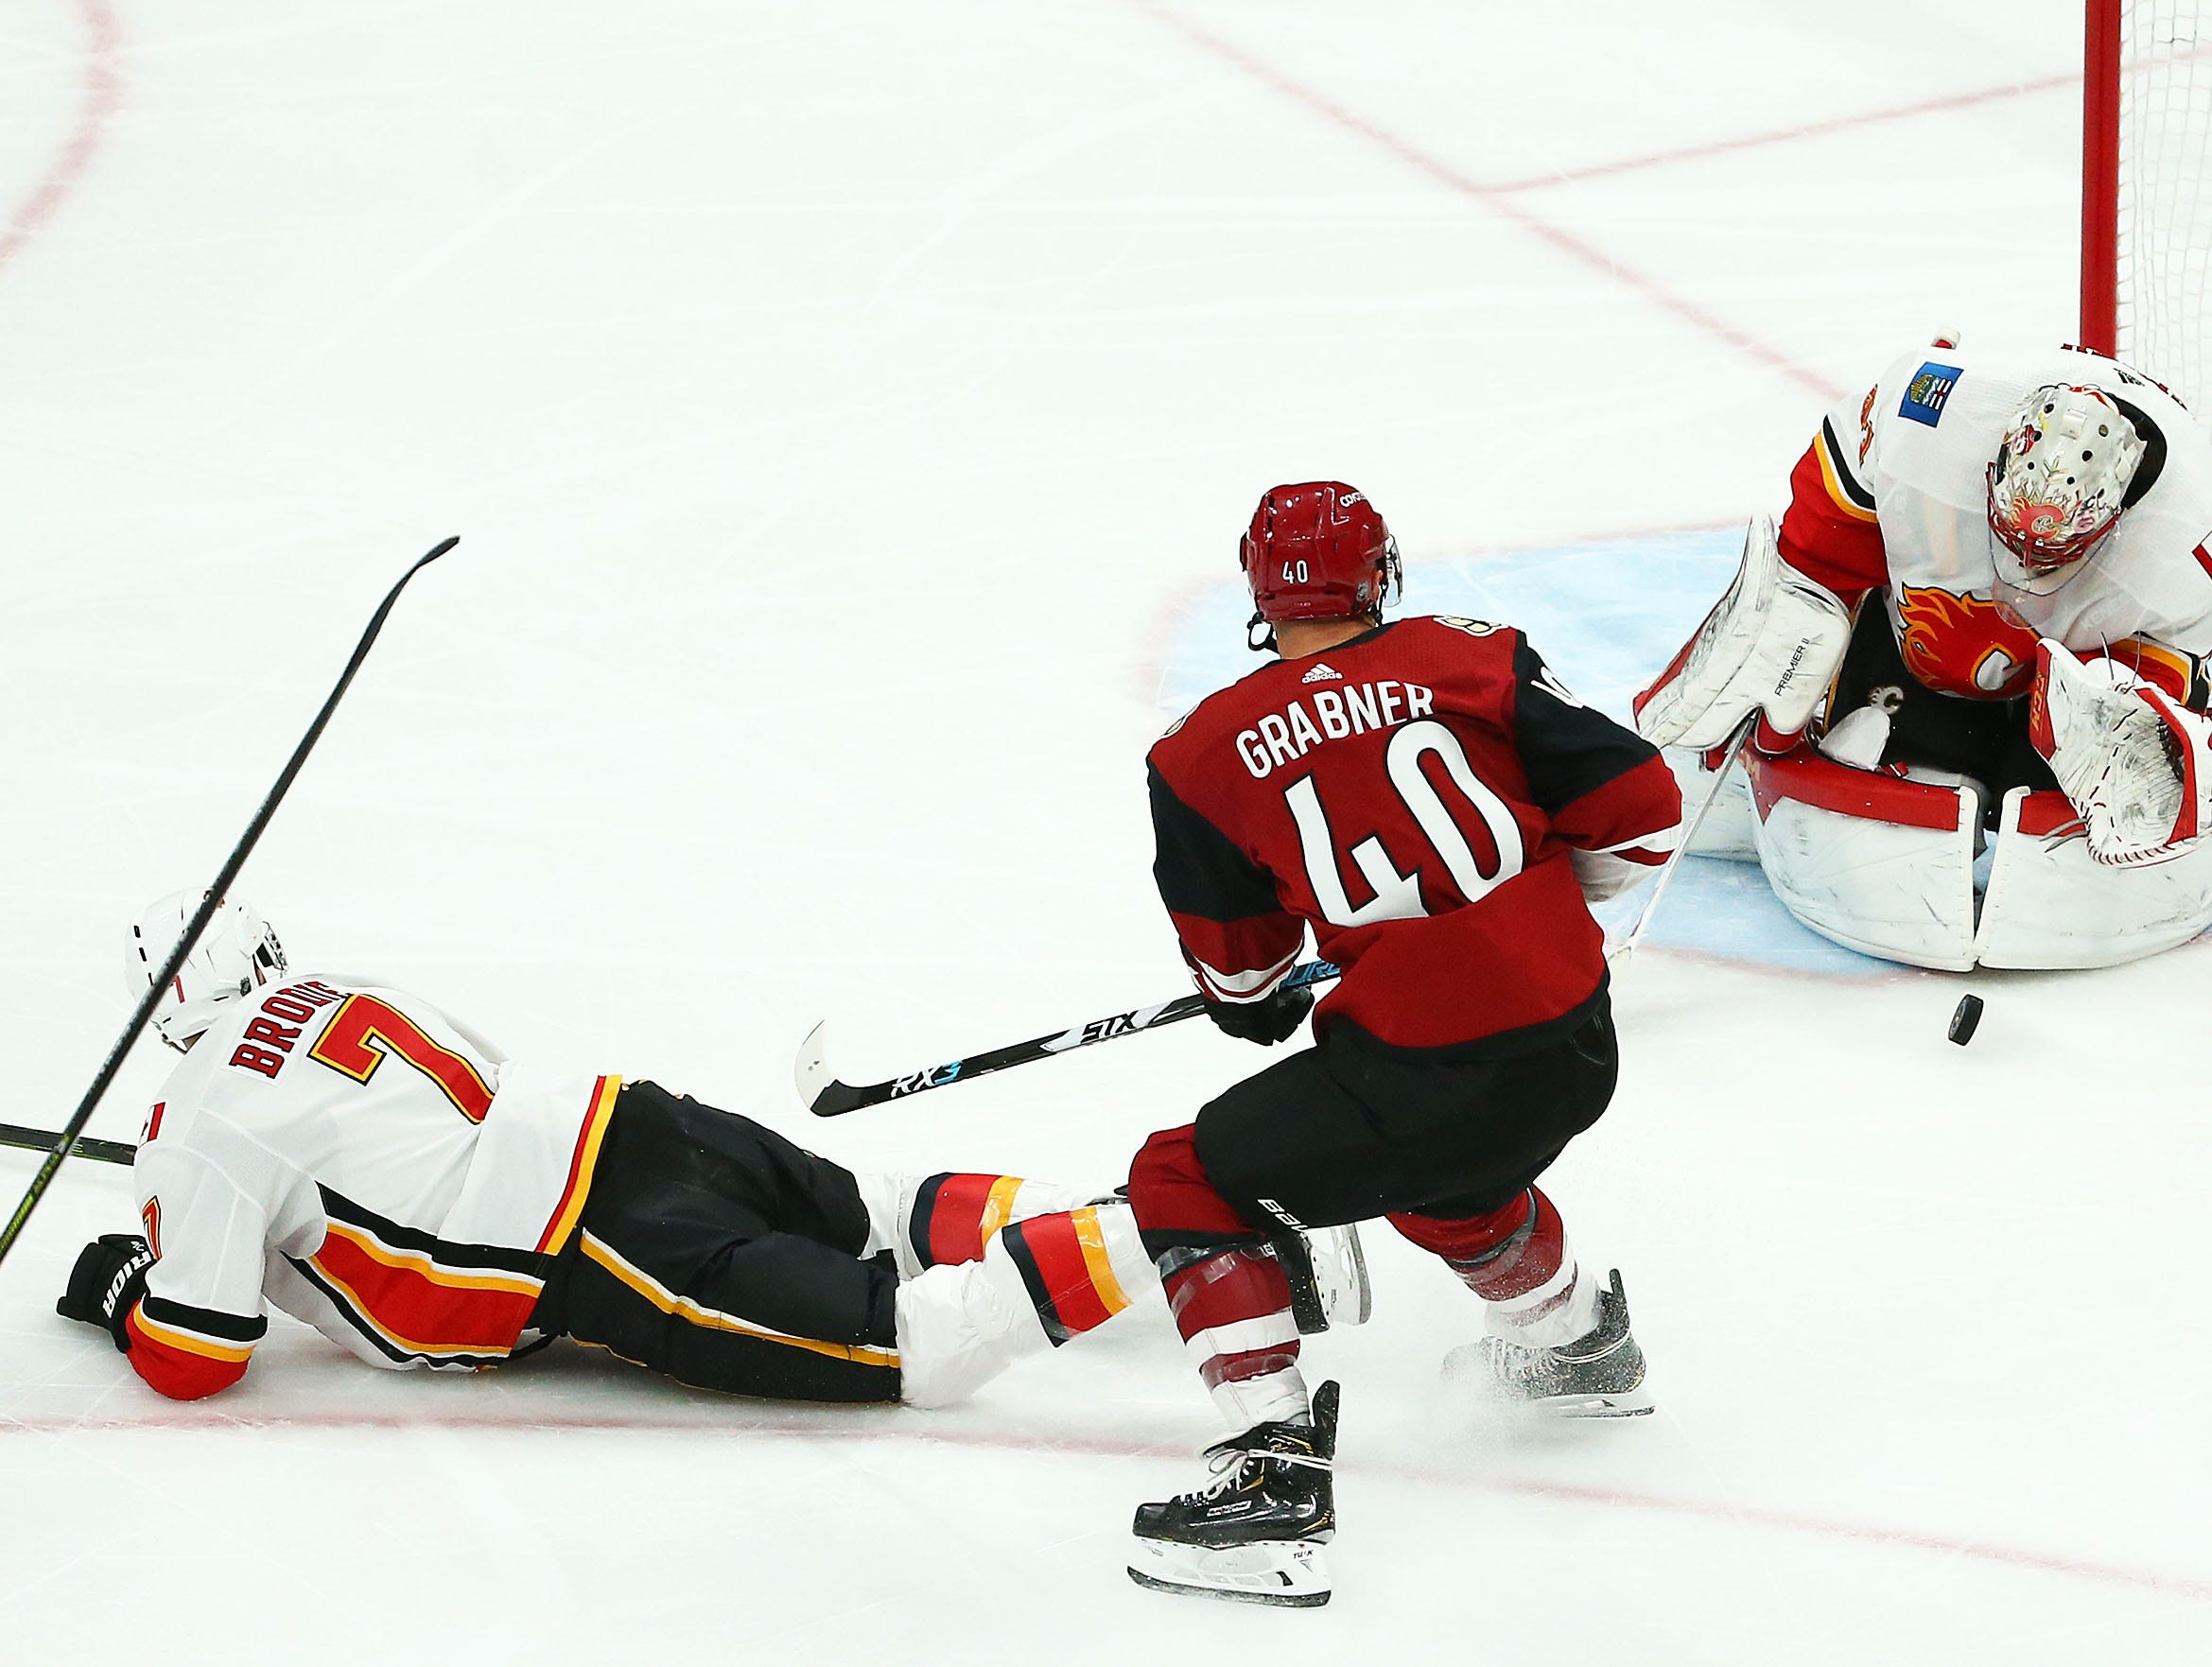 Calgary Flames goaltender Mike Smith (41) stops the shot by Arizona Coyotes right wing Michael Grabner (40) in the first period on Mar. 7, 2019, at Gila River Arena in Glendale, Ariz.